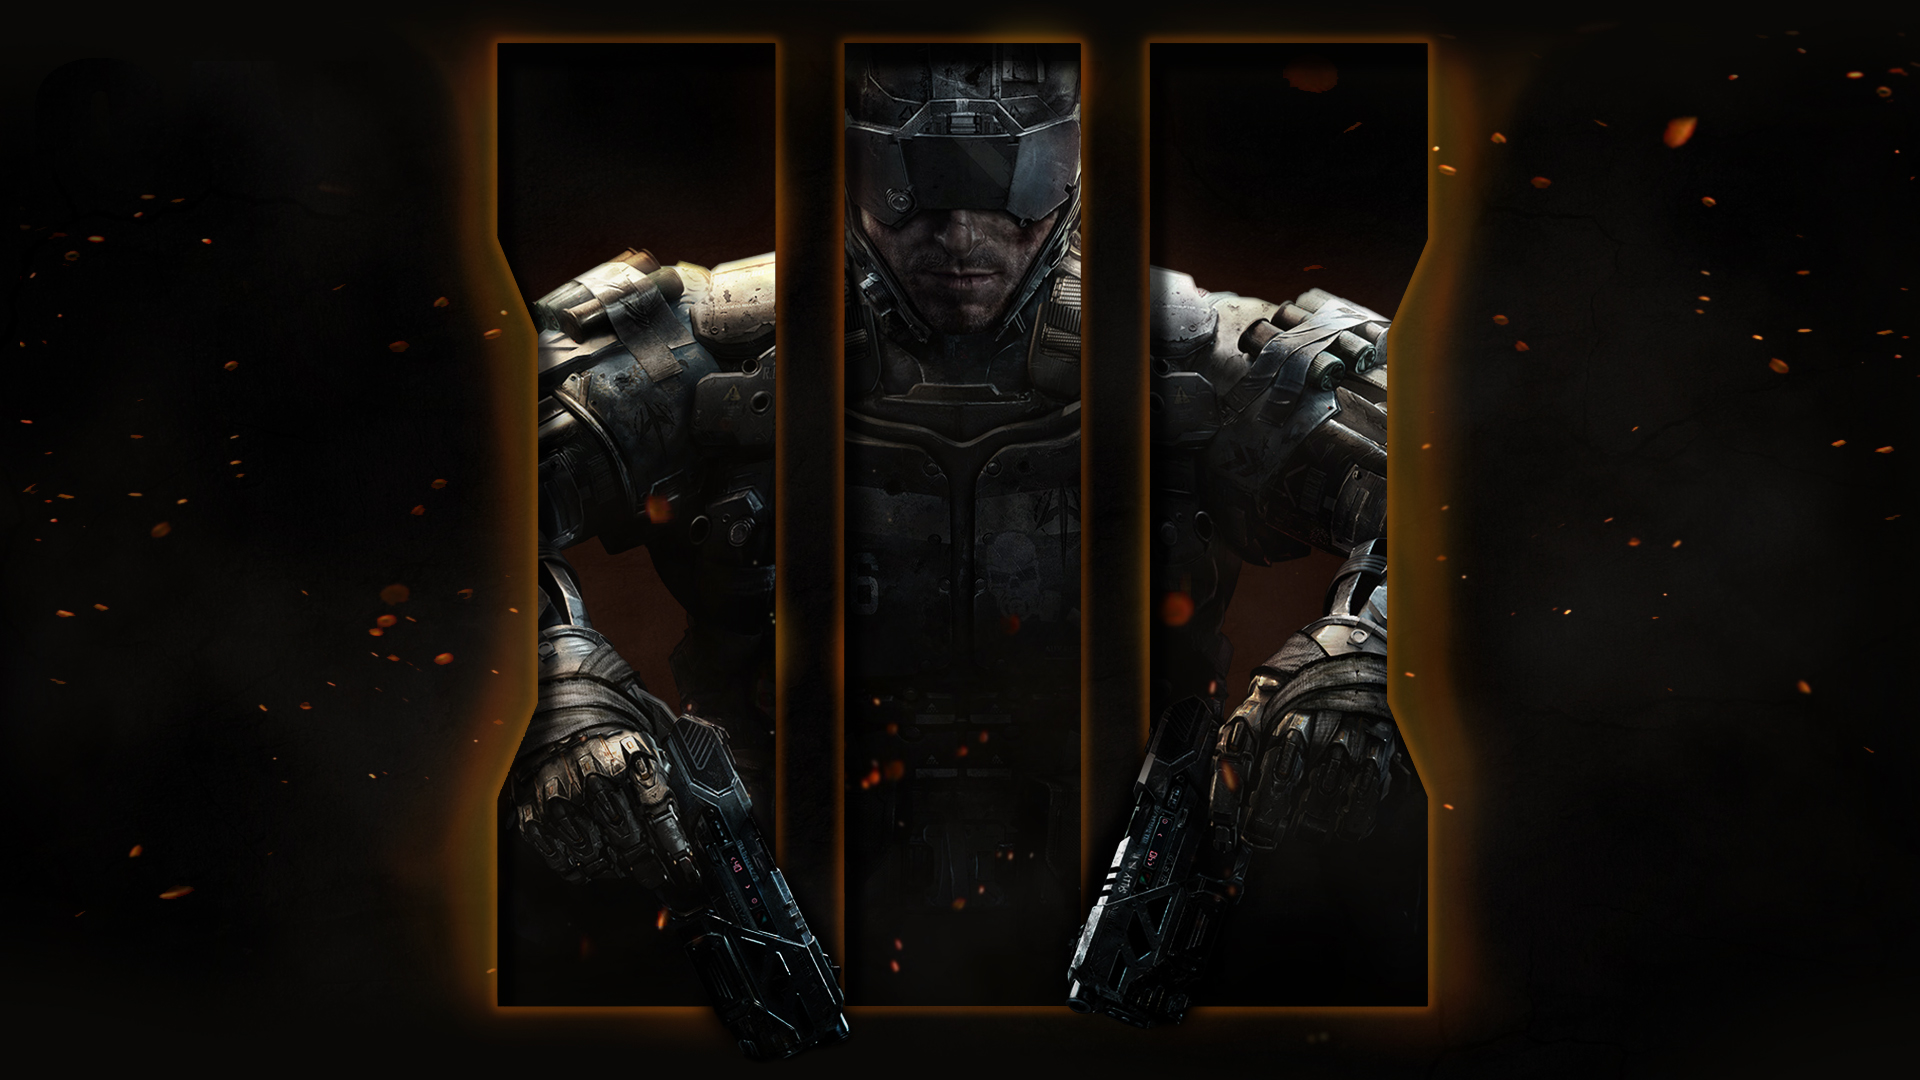 Call Of Duty Black Ops 3 Wallpaper 04 By Toby Affenbude On